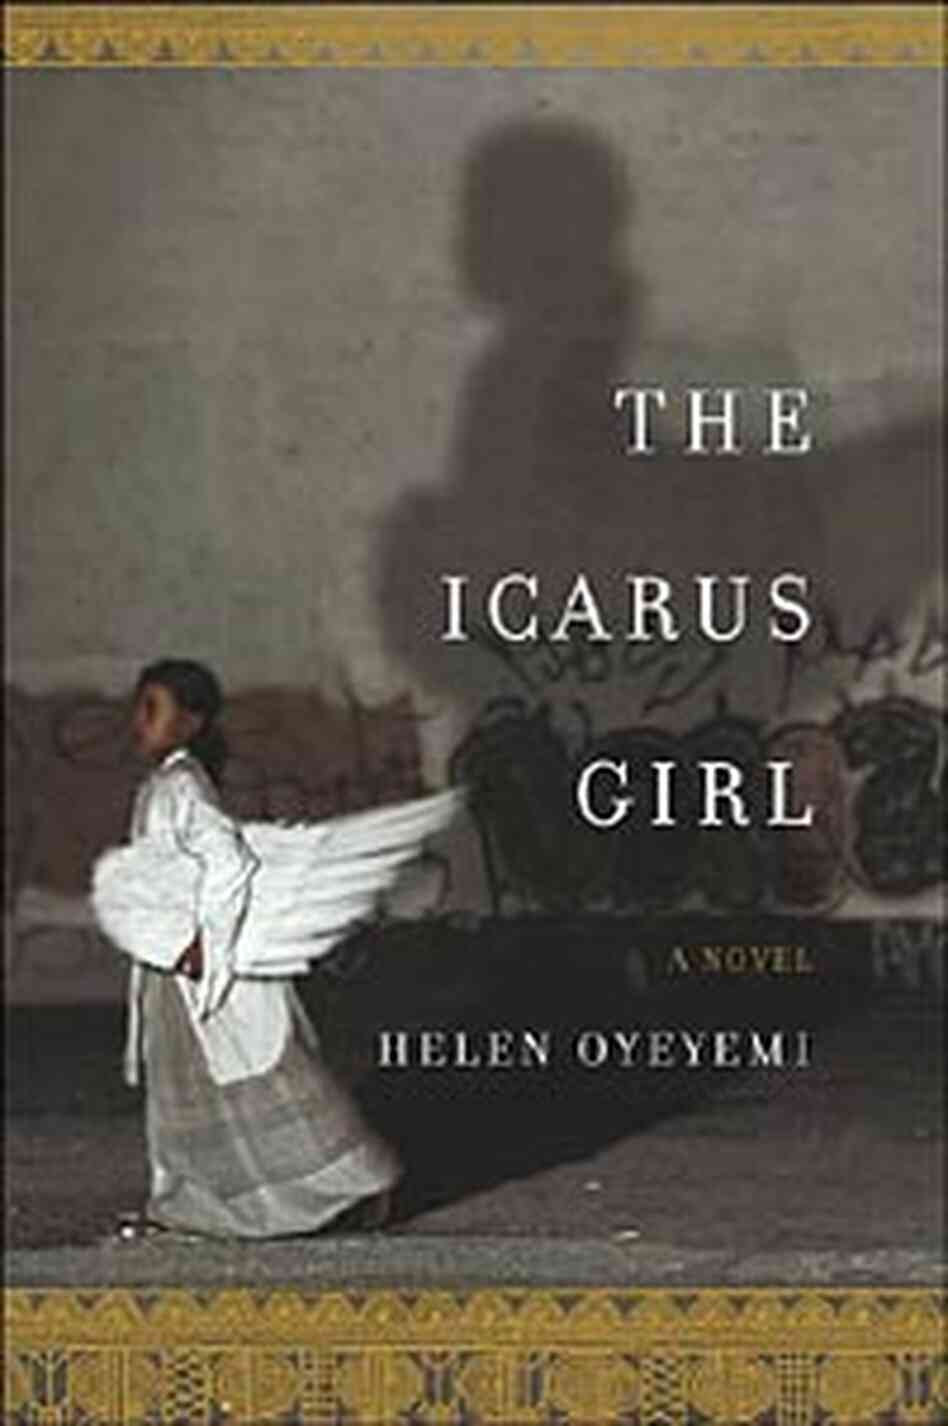 Cover for Helen Oyeyemi's book 'The Icarus Girl'